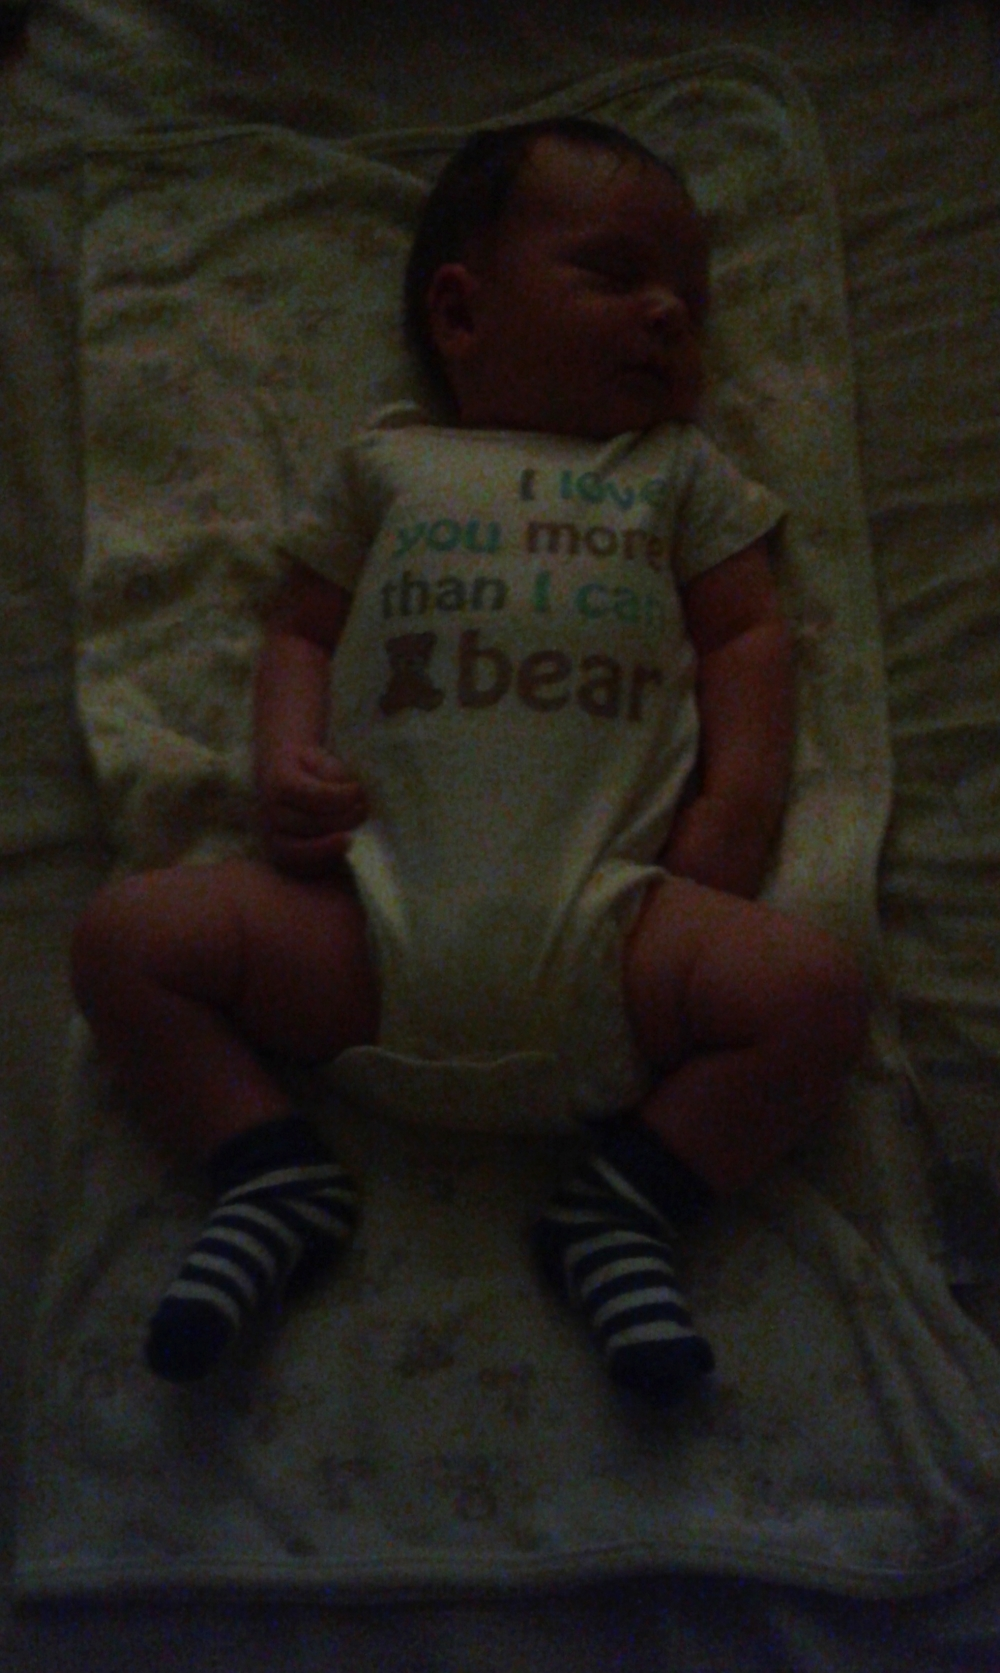 I love you more than I can bear:Baby Vee at 4 weeks 1 day, 8/31/15 at 10:34pm